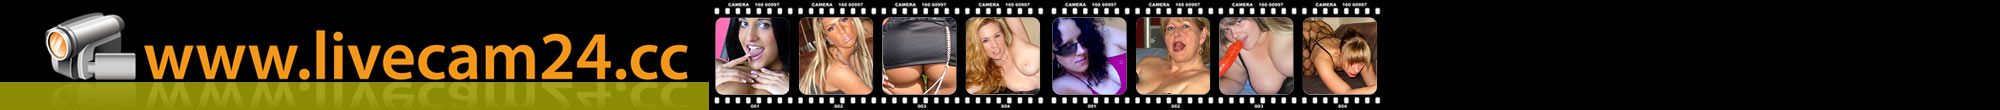 LucyLust, 27 Jahre, BH: 75 DD - brüste 75dd -  - Video Web Cams Live Sex Chat von heissen Girls